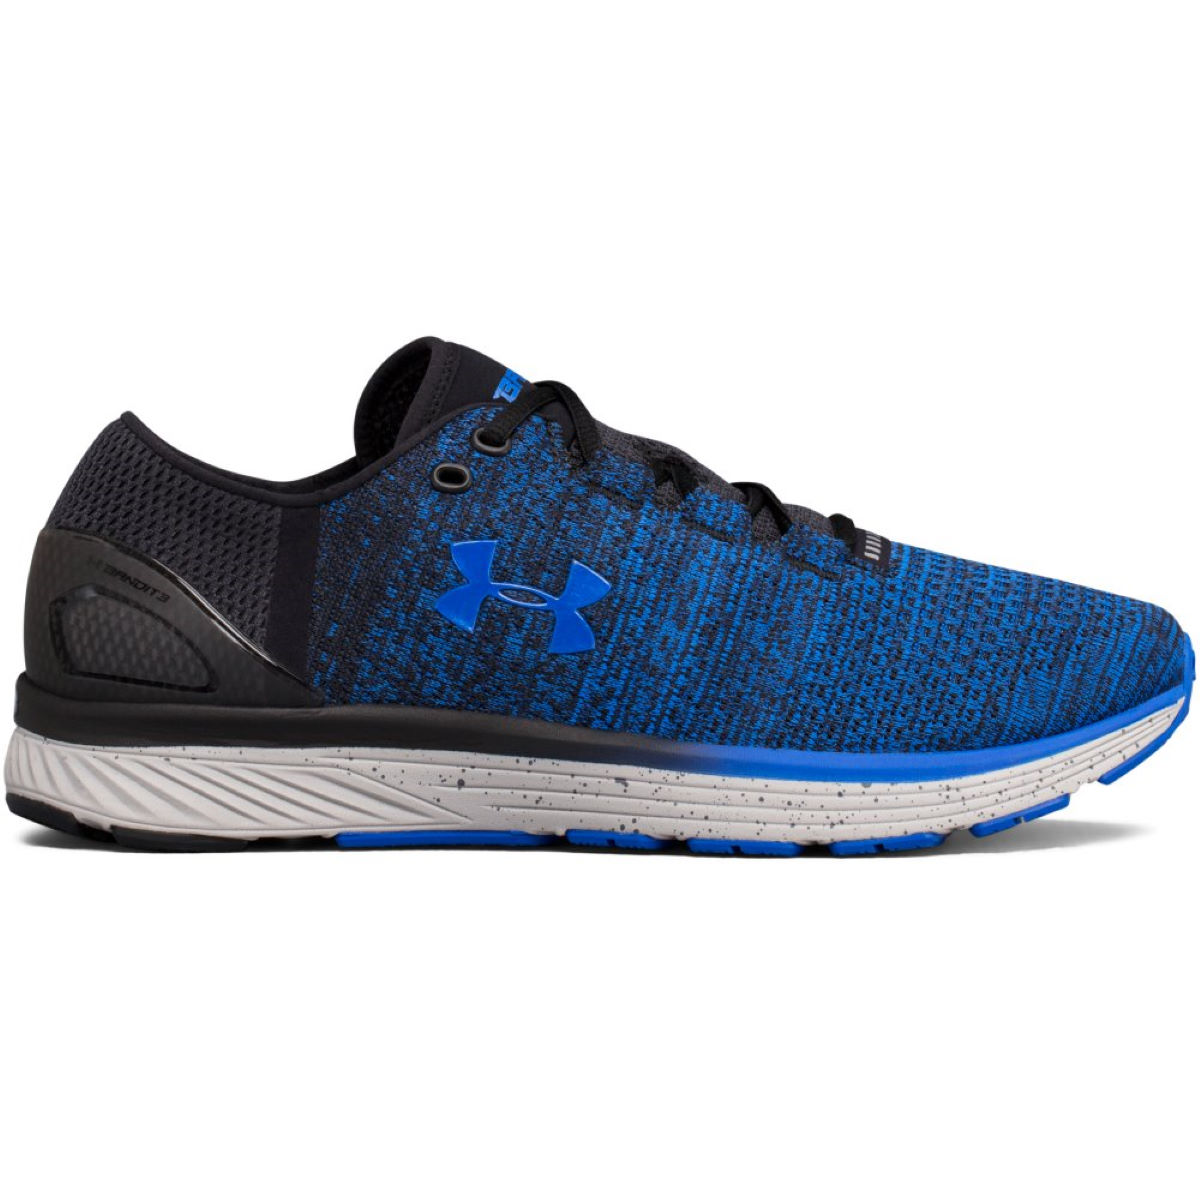 Chaussures Under Armour Charged Bandit 3 Run - UK 13 ULTRA BLUE